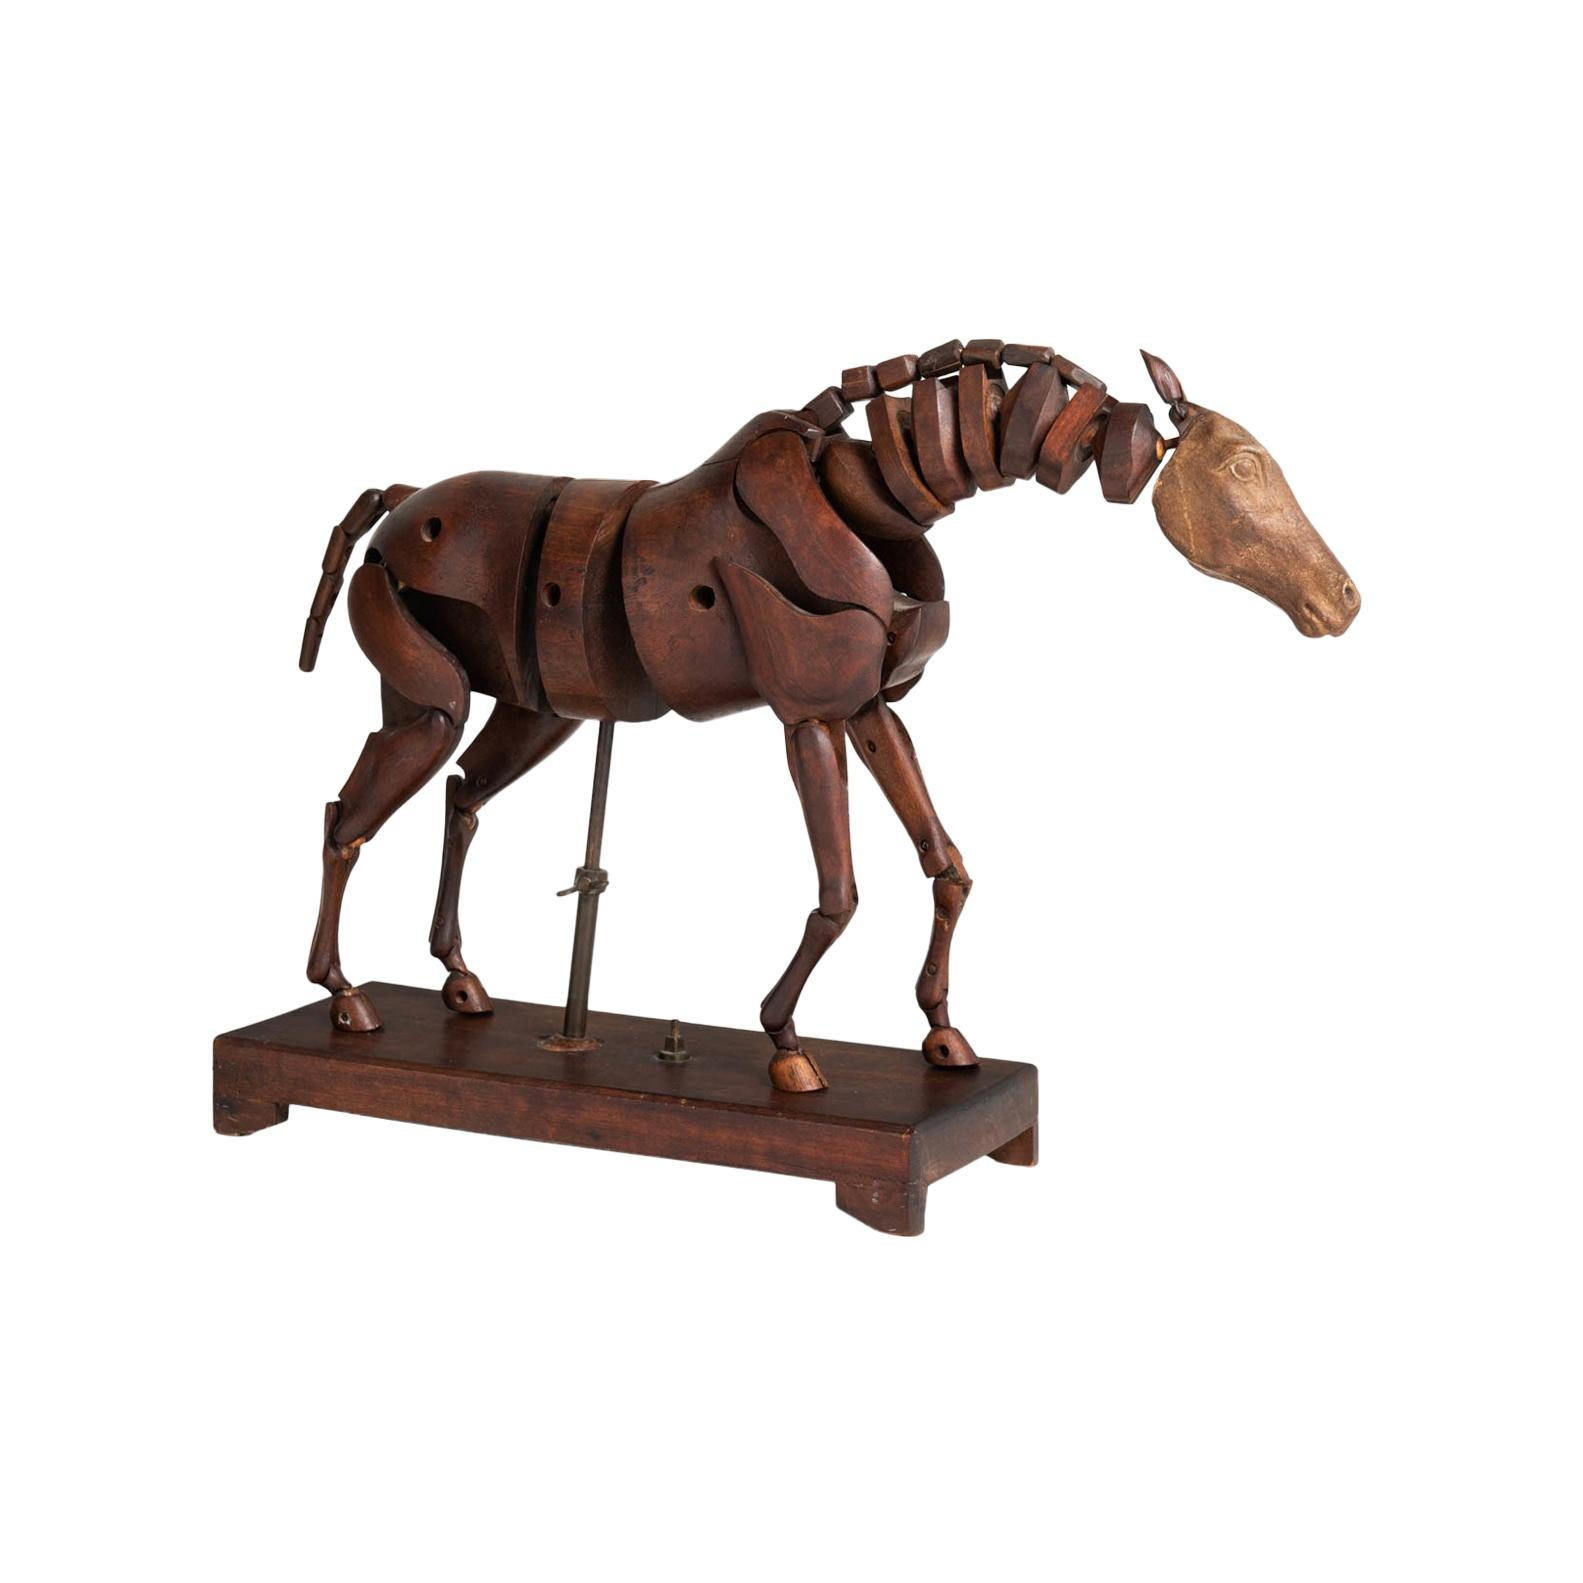 Articulated Wooden Horse Artist's Model by C. Barbe, England, circa 1830